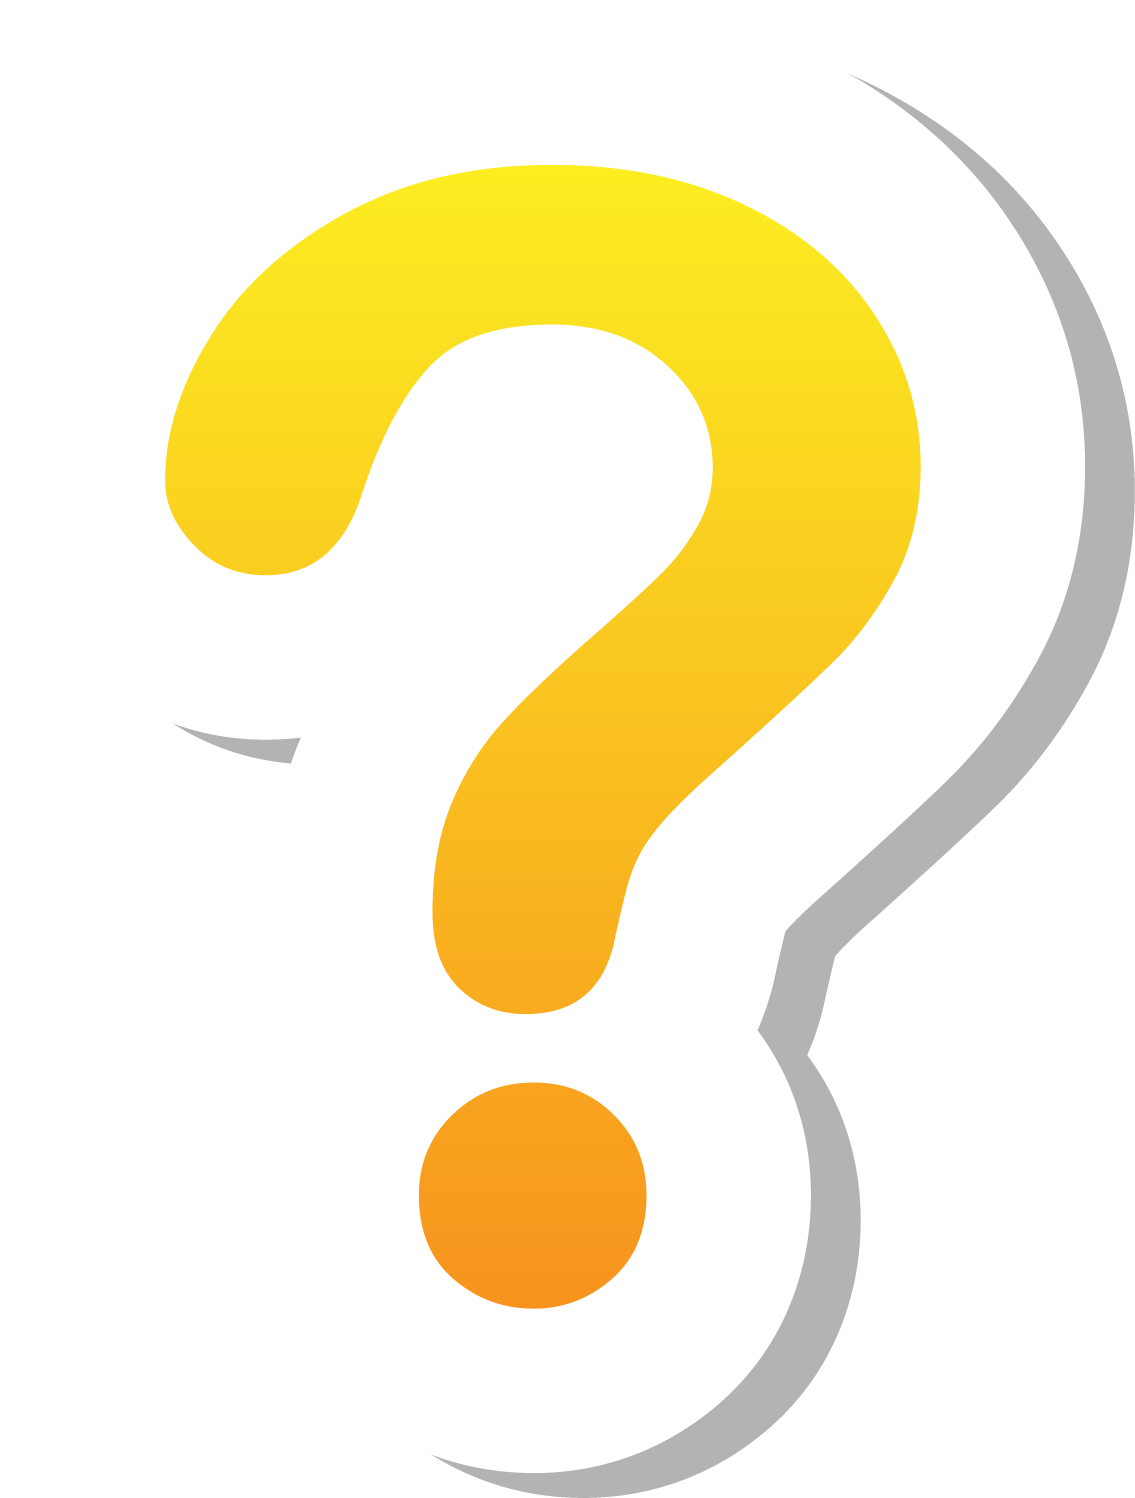 Yellow question mark png. Adobe illustrator icon pale